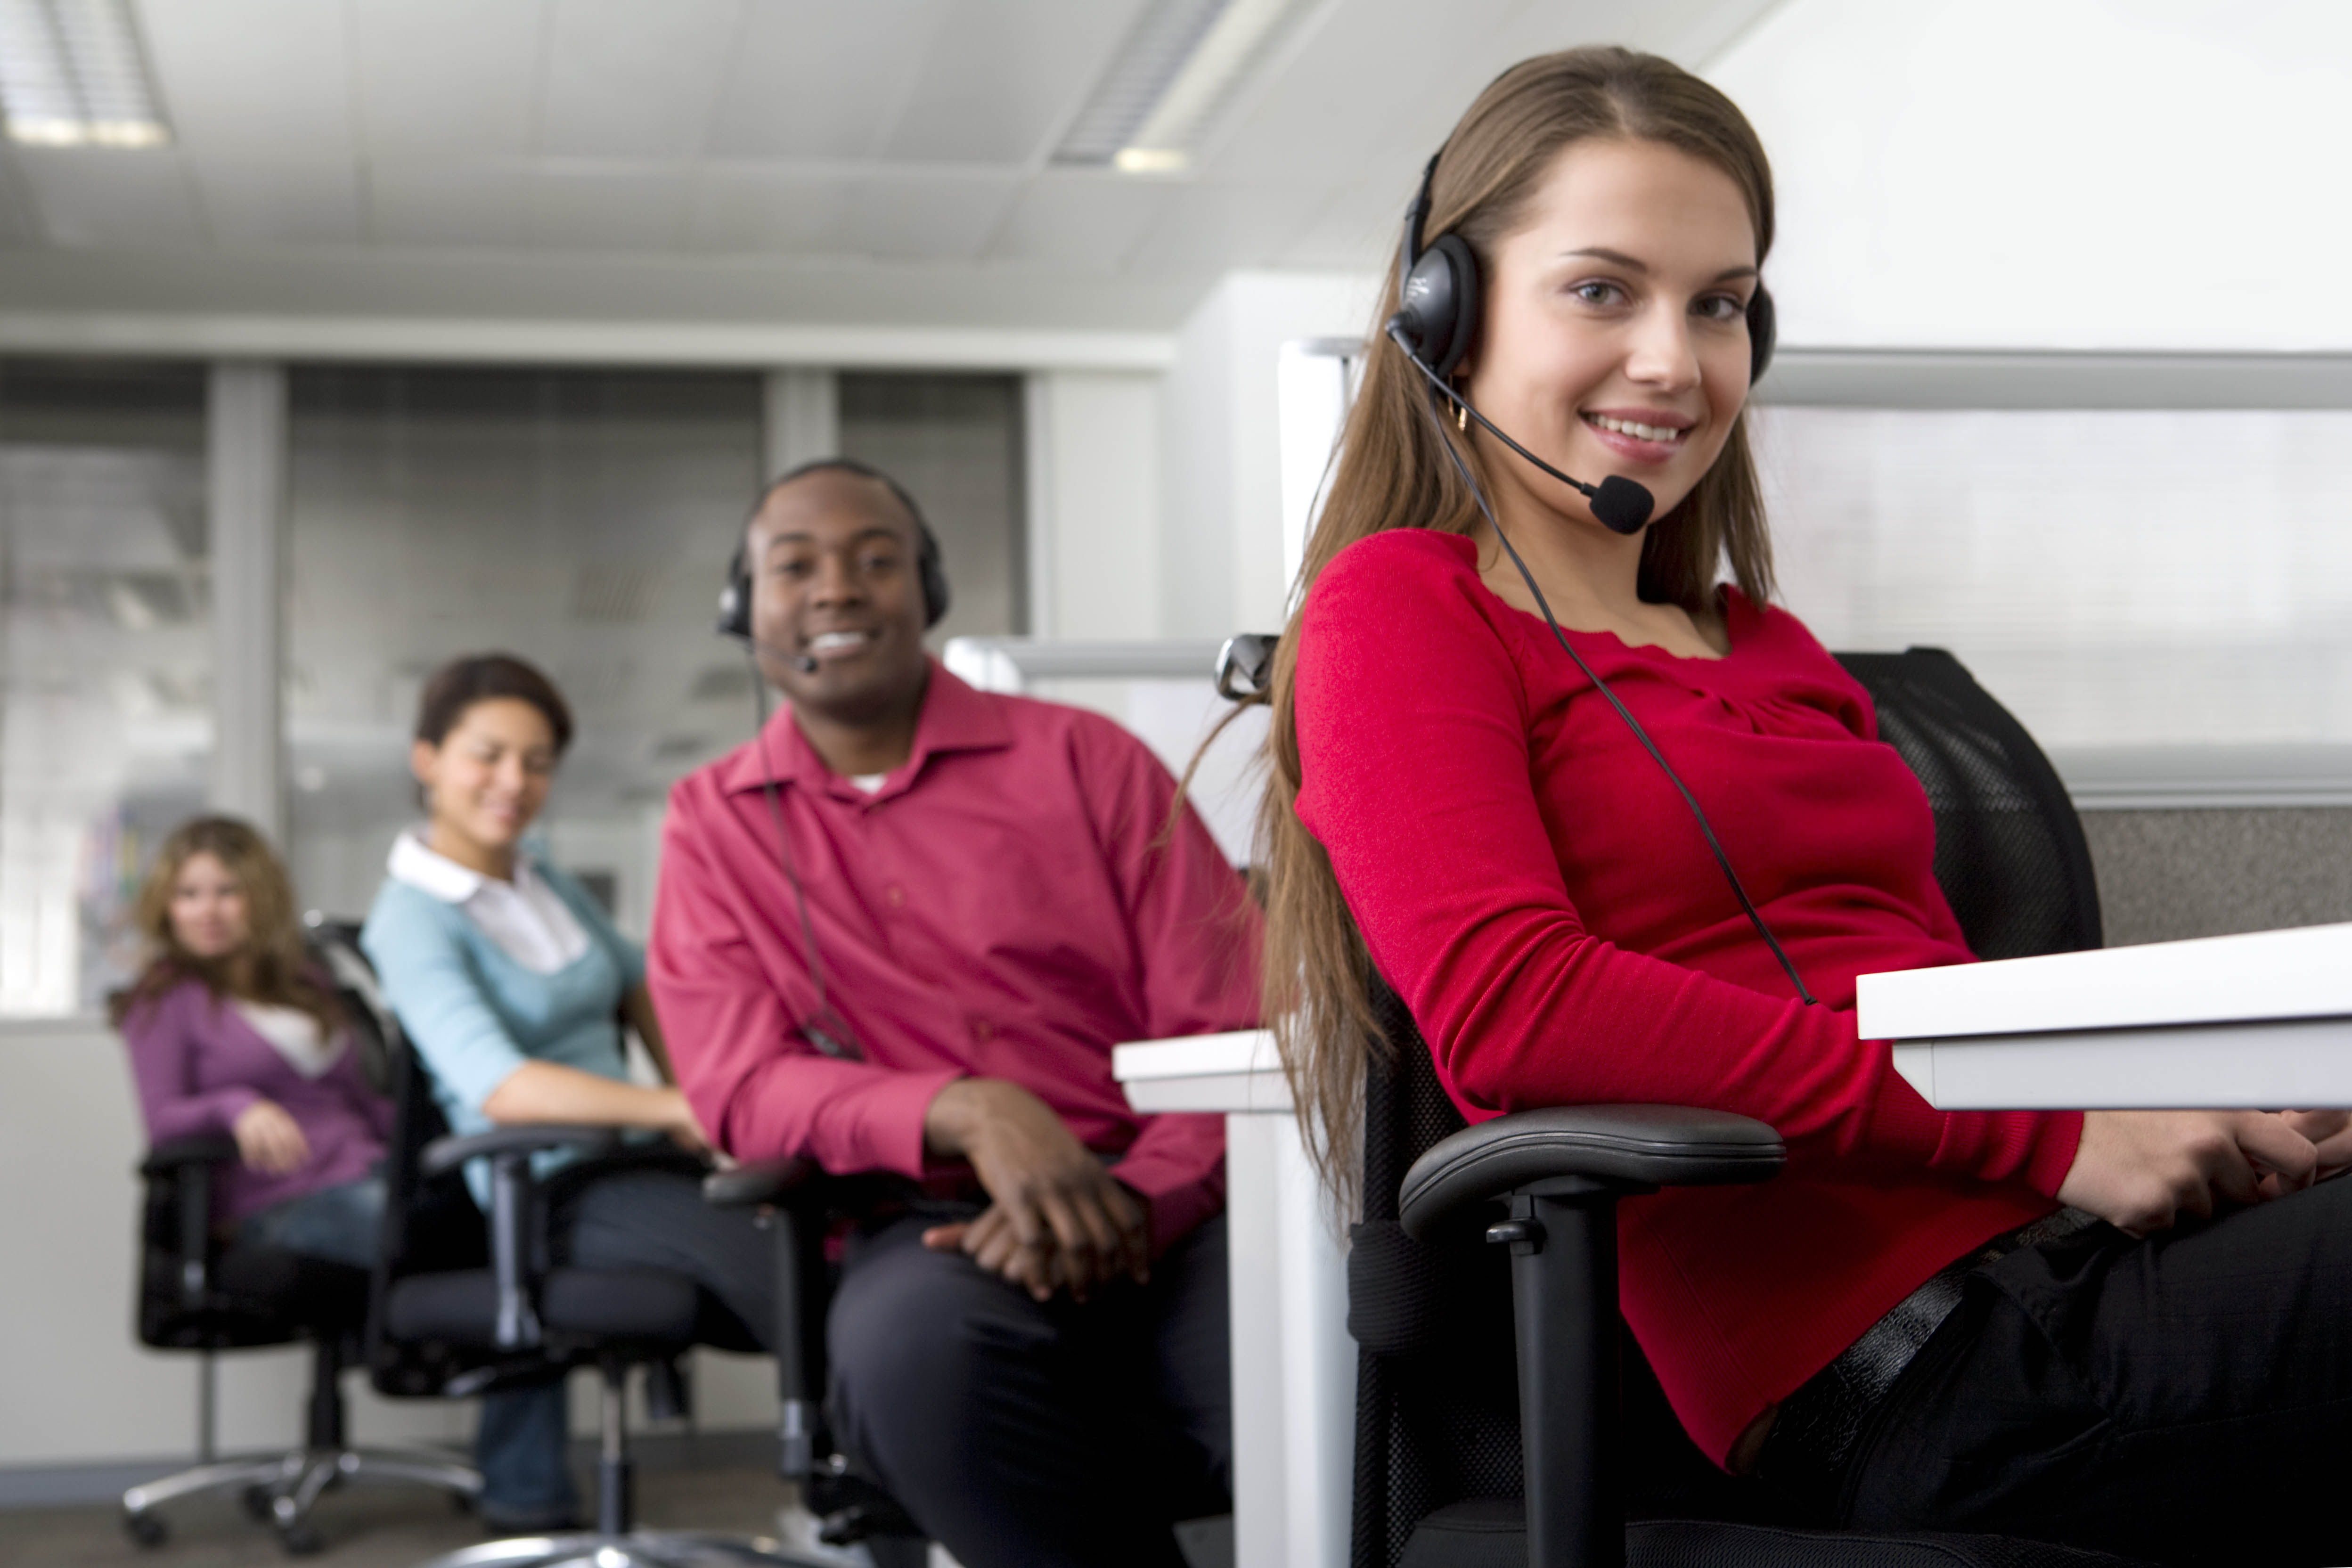 Businesswoman and co-workers working in cubicles